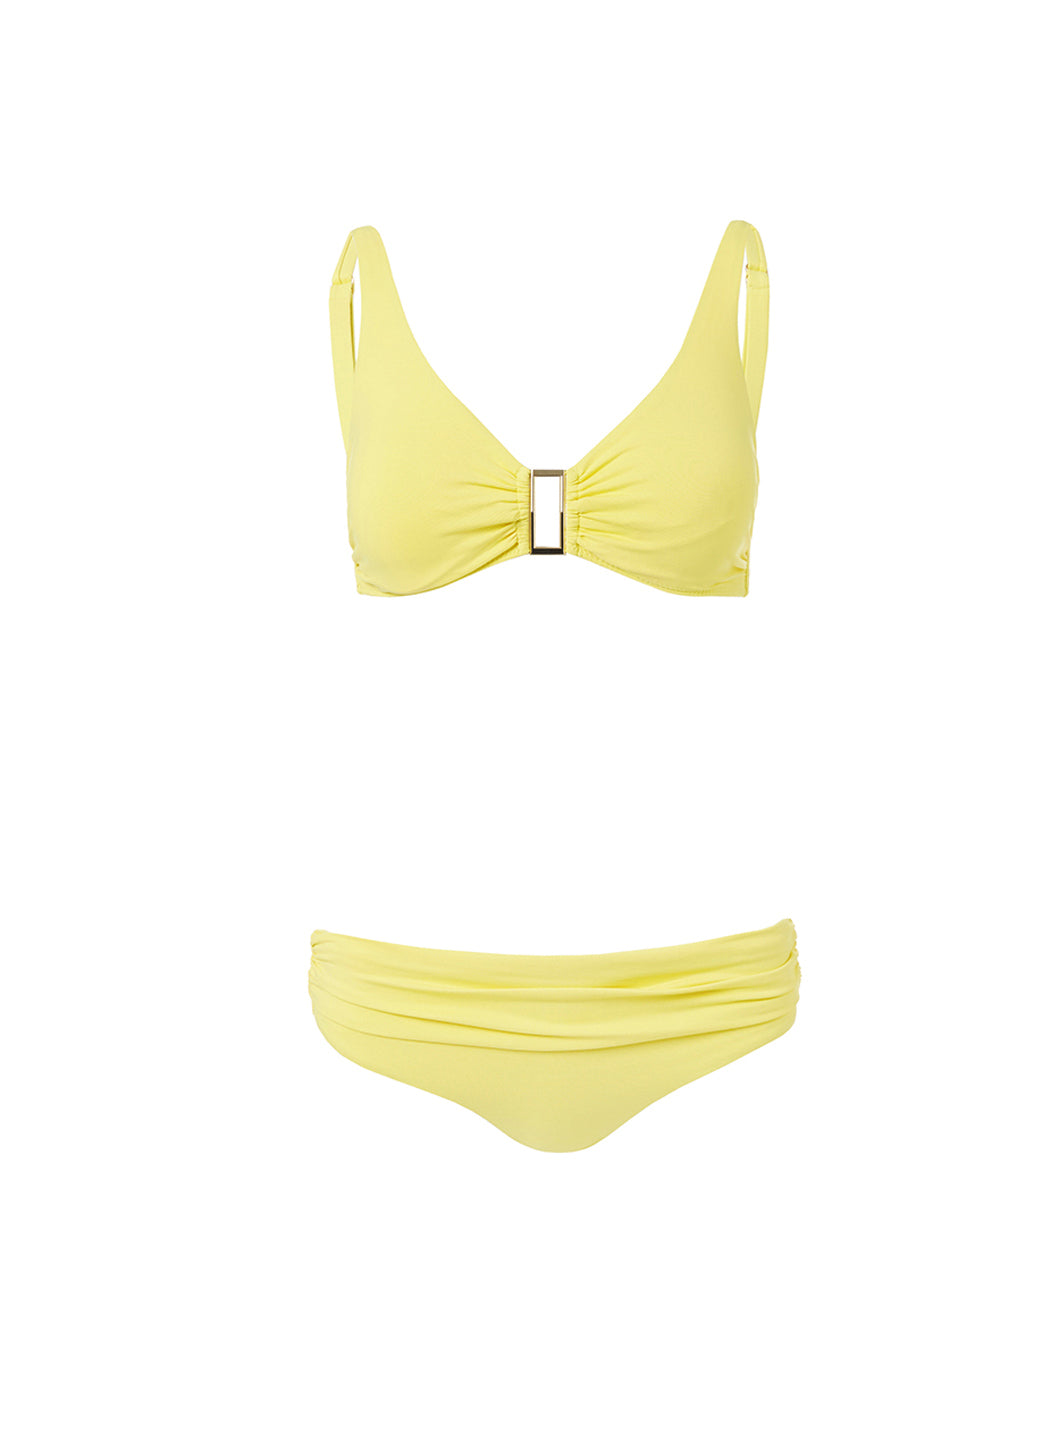 Belair Yellow Over The Shoulder Supportive Bikini - Melissa Odabash Over The Shoulder Swimwear